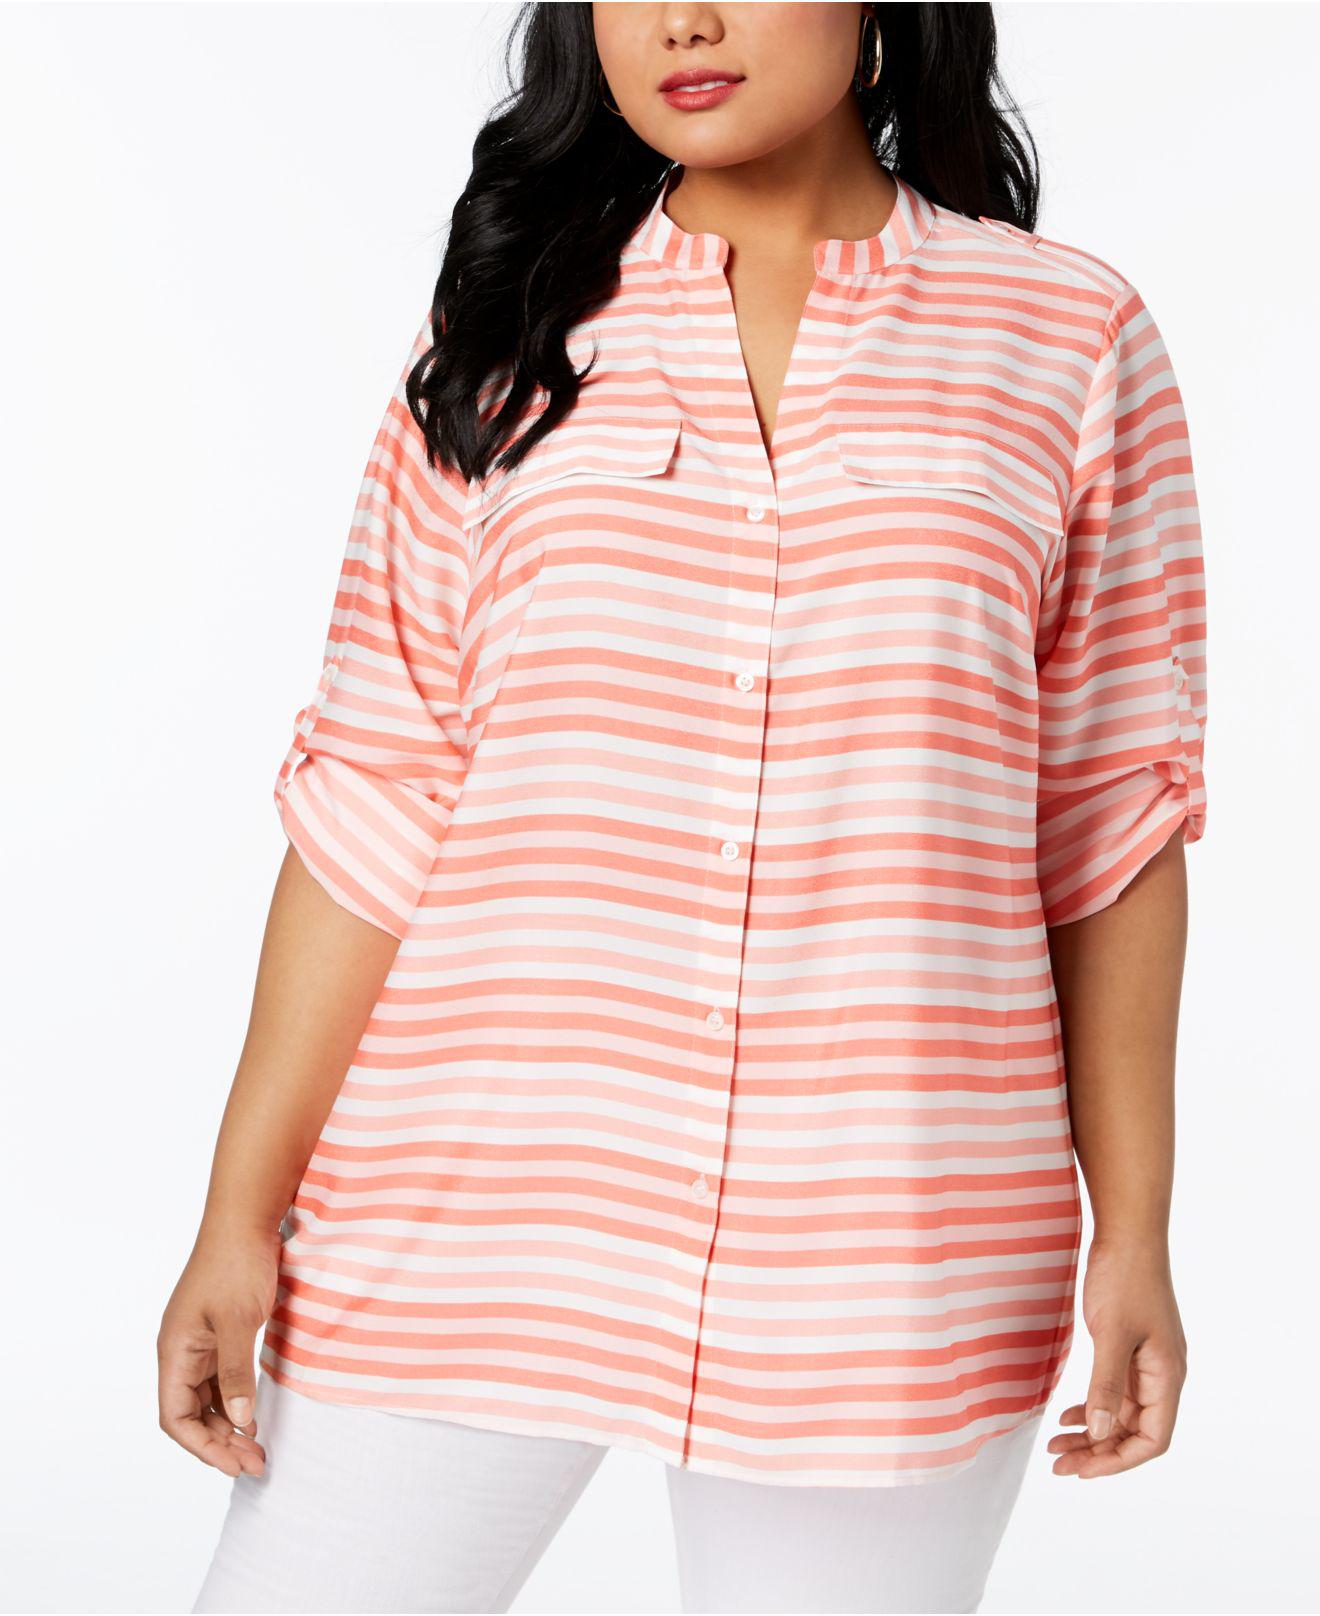 2d972cd2219 Lyst - Calvin Klein Plus Size Striped Tunic Shirt in Pink